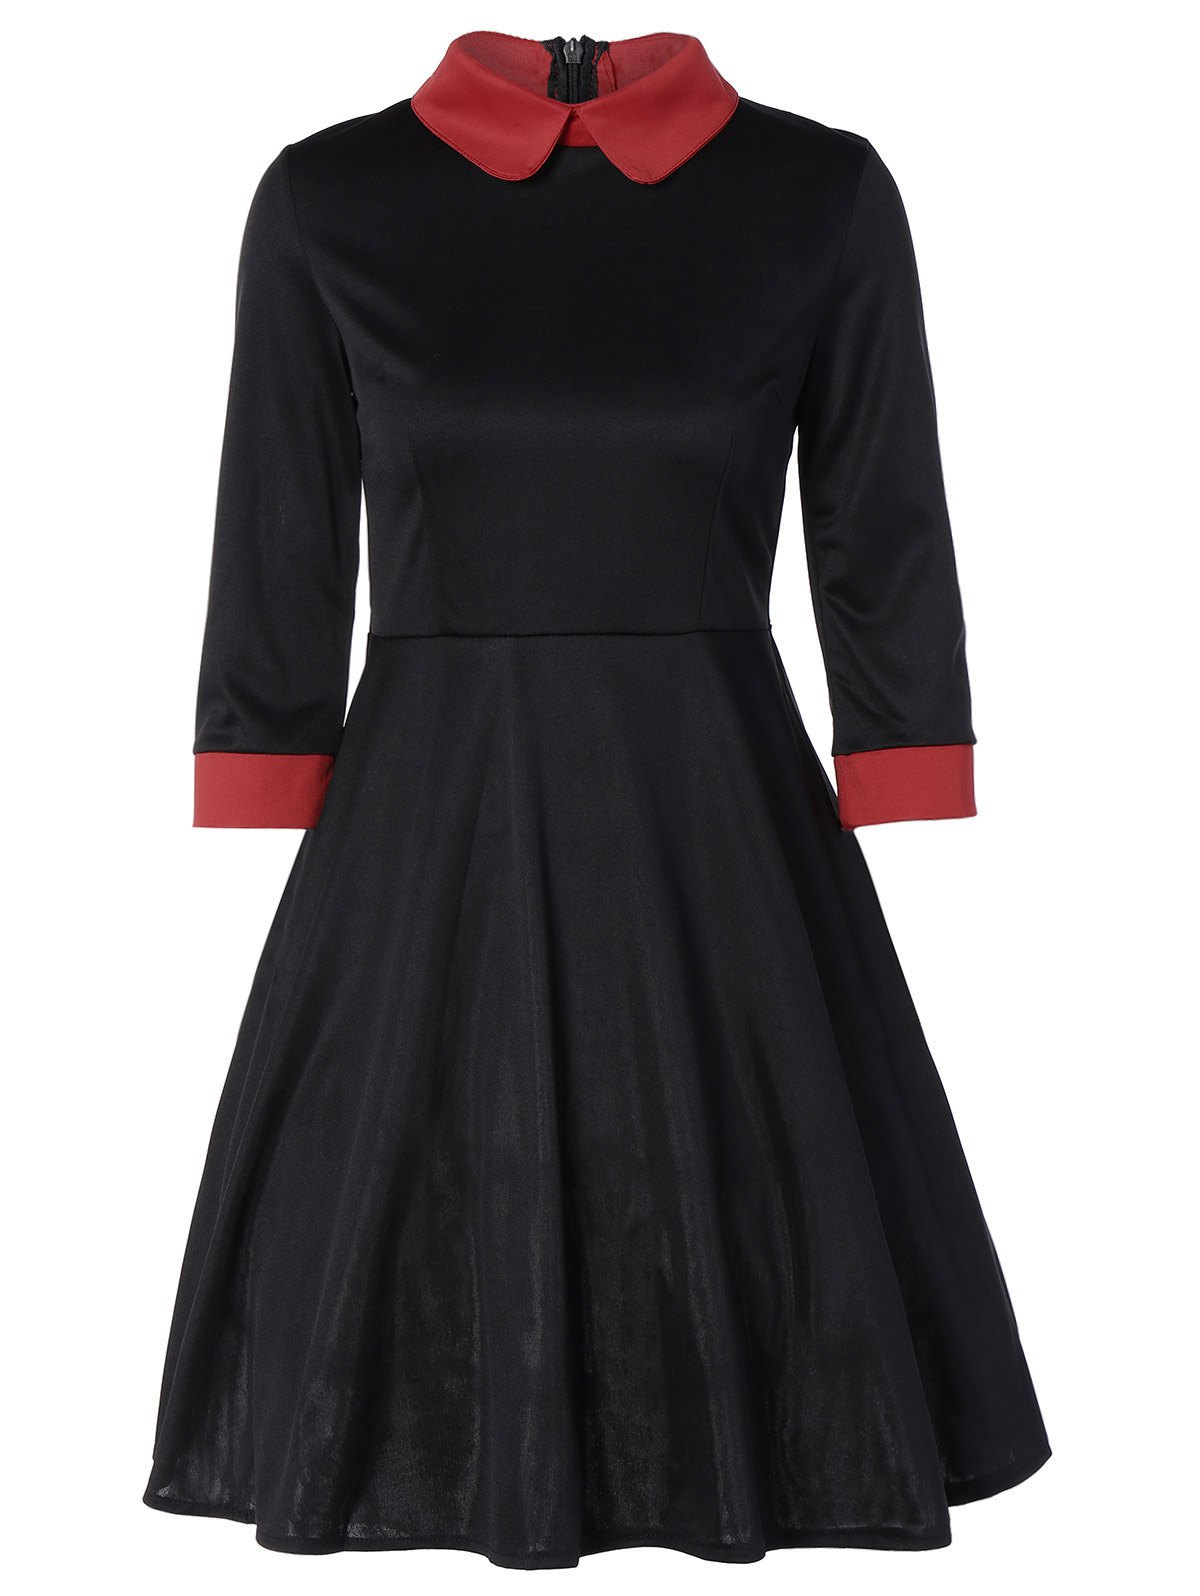 Panel Peter Pan Collar Midi Swing Dress - BLACK L